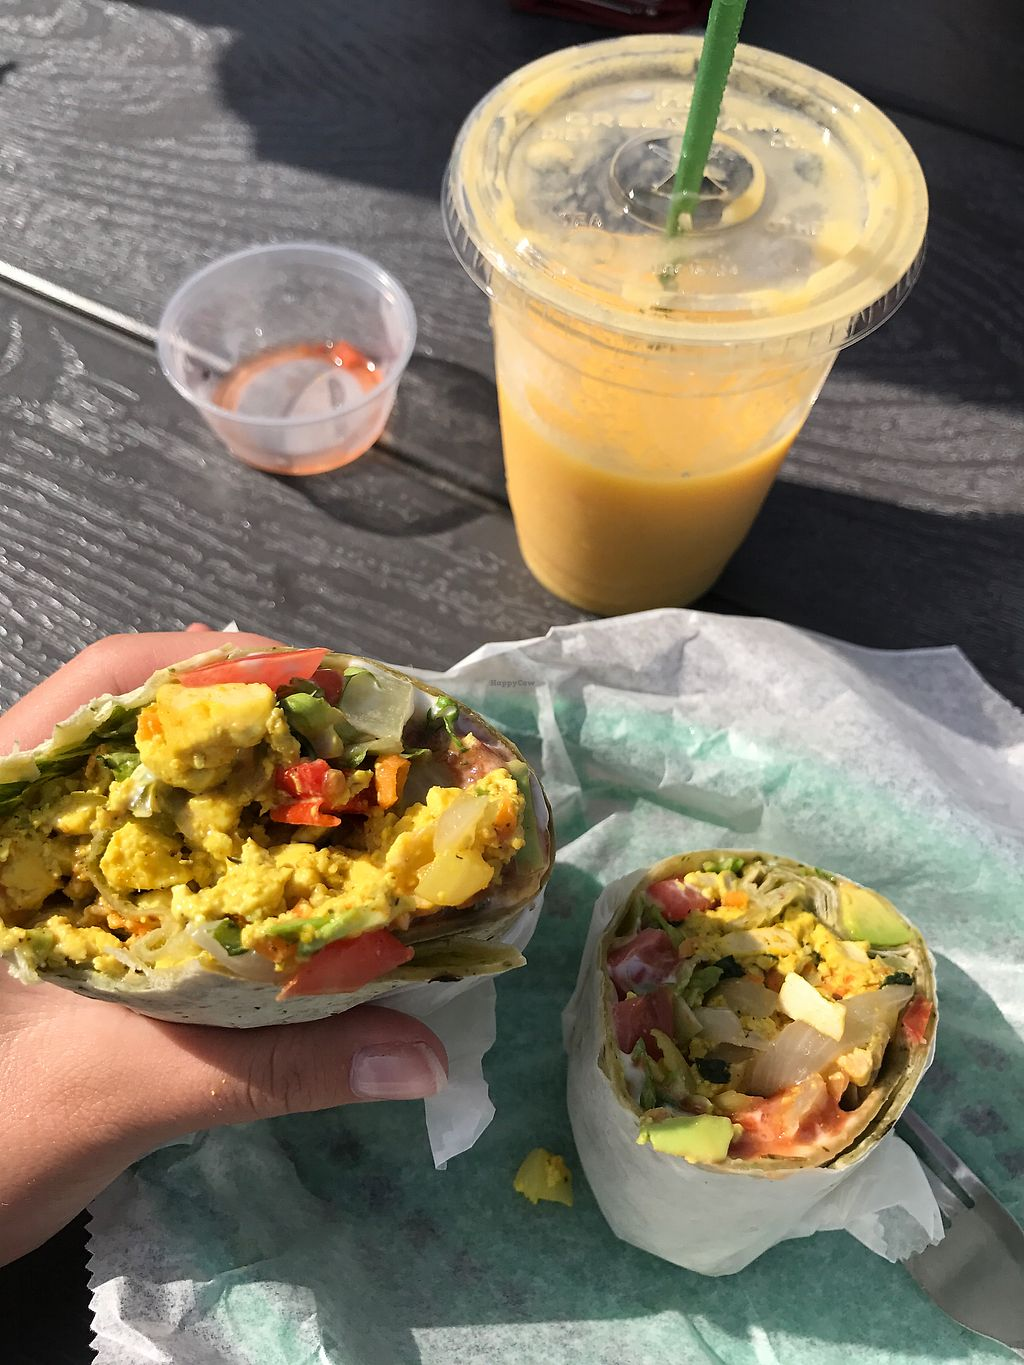 """Photo of Living on the Veg  by <a href=""""/members/profile/JenTodorov"""">JenTodorov</a> <br/>tofu breakfast wrap and tropical smoothie ! delicious  <br/> August 13, 2017  - <a href='/contact/abuse/image/8669/292324'>Report</a>"""